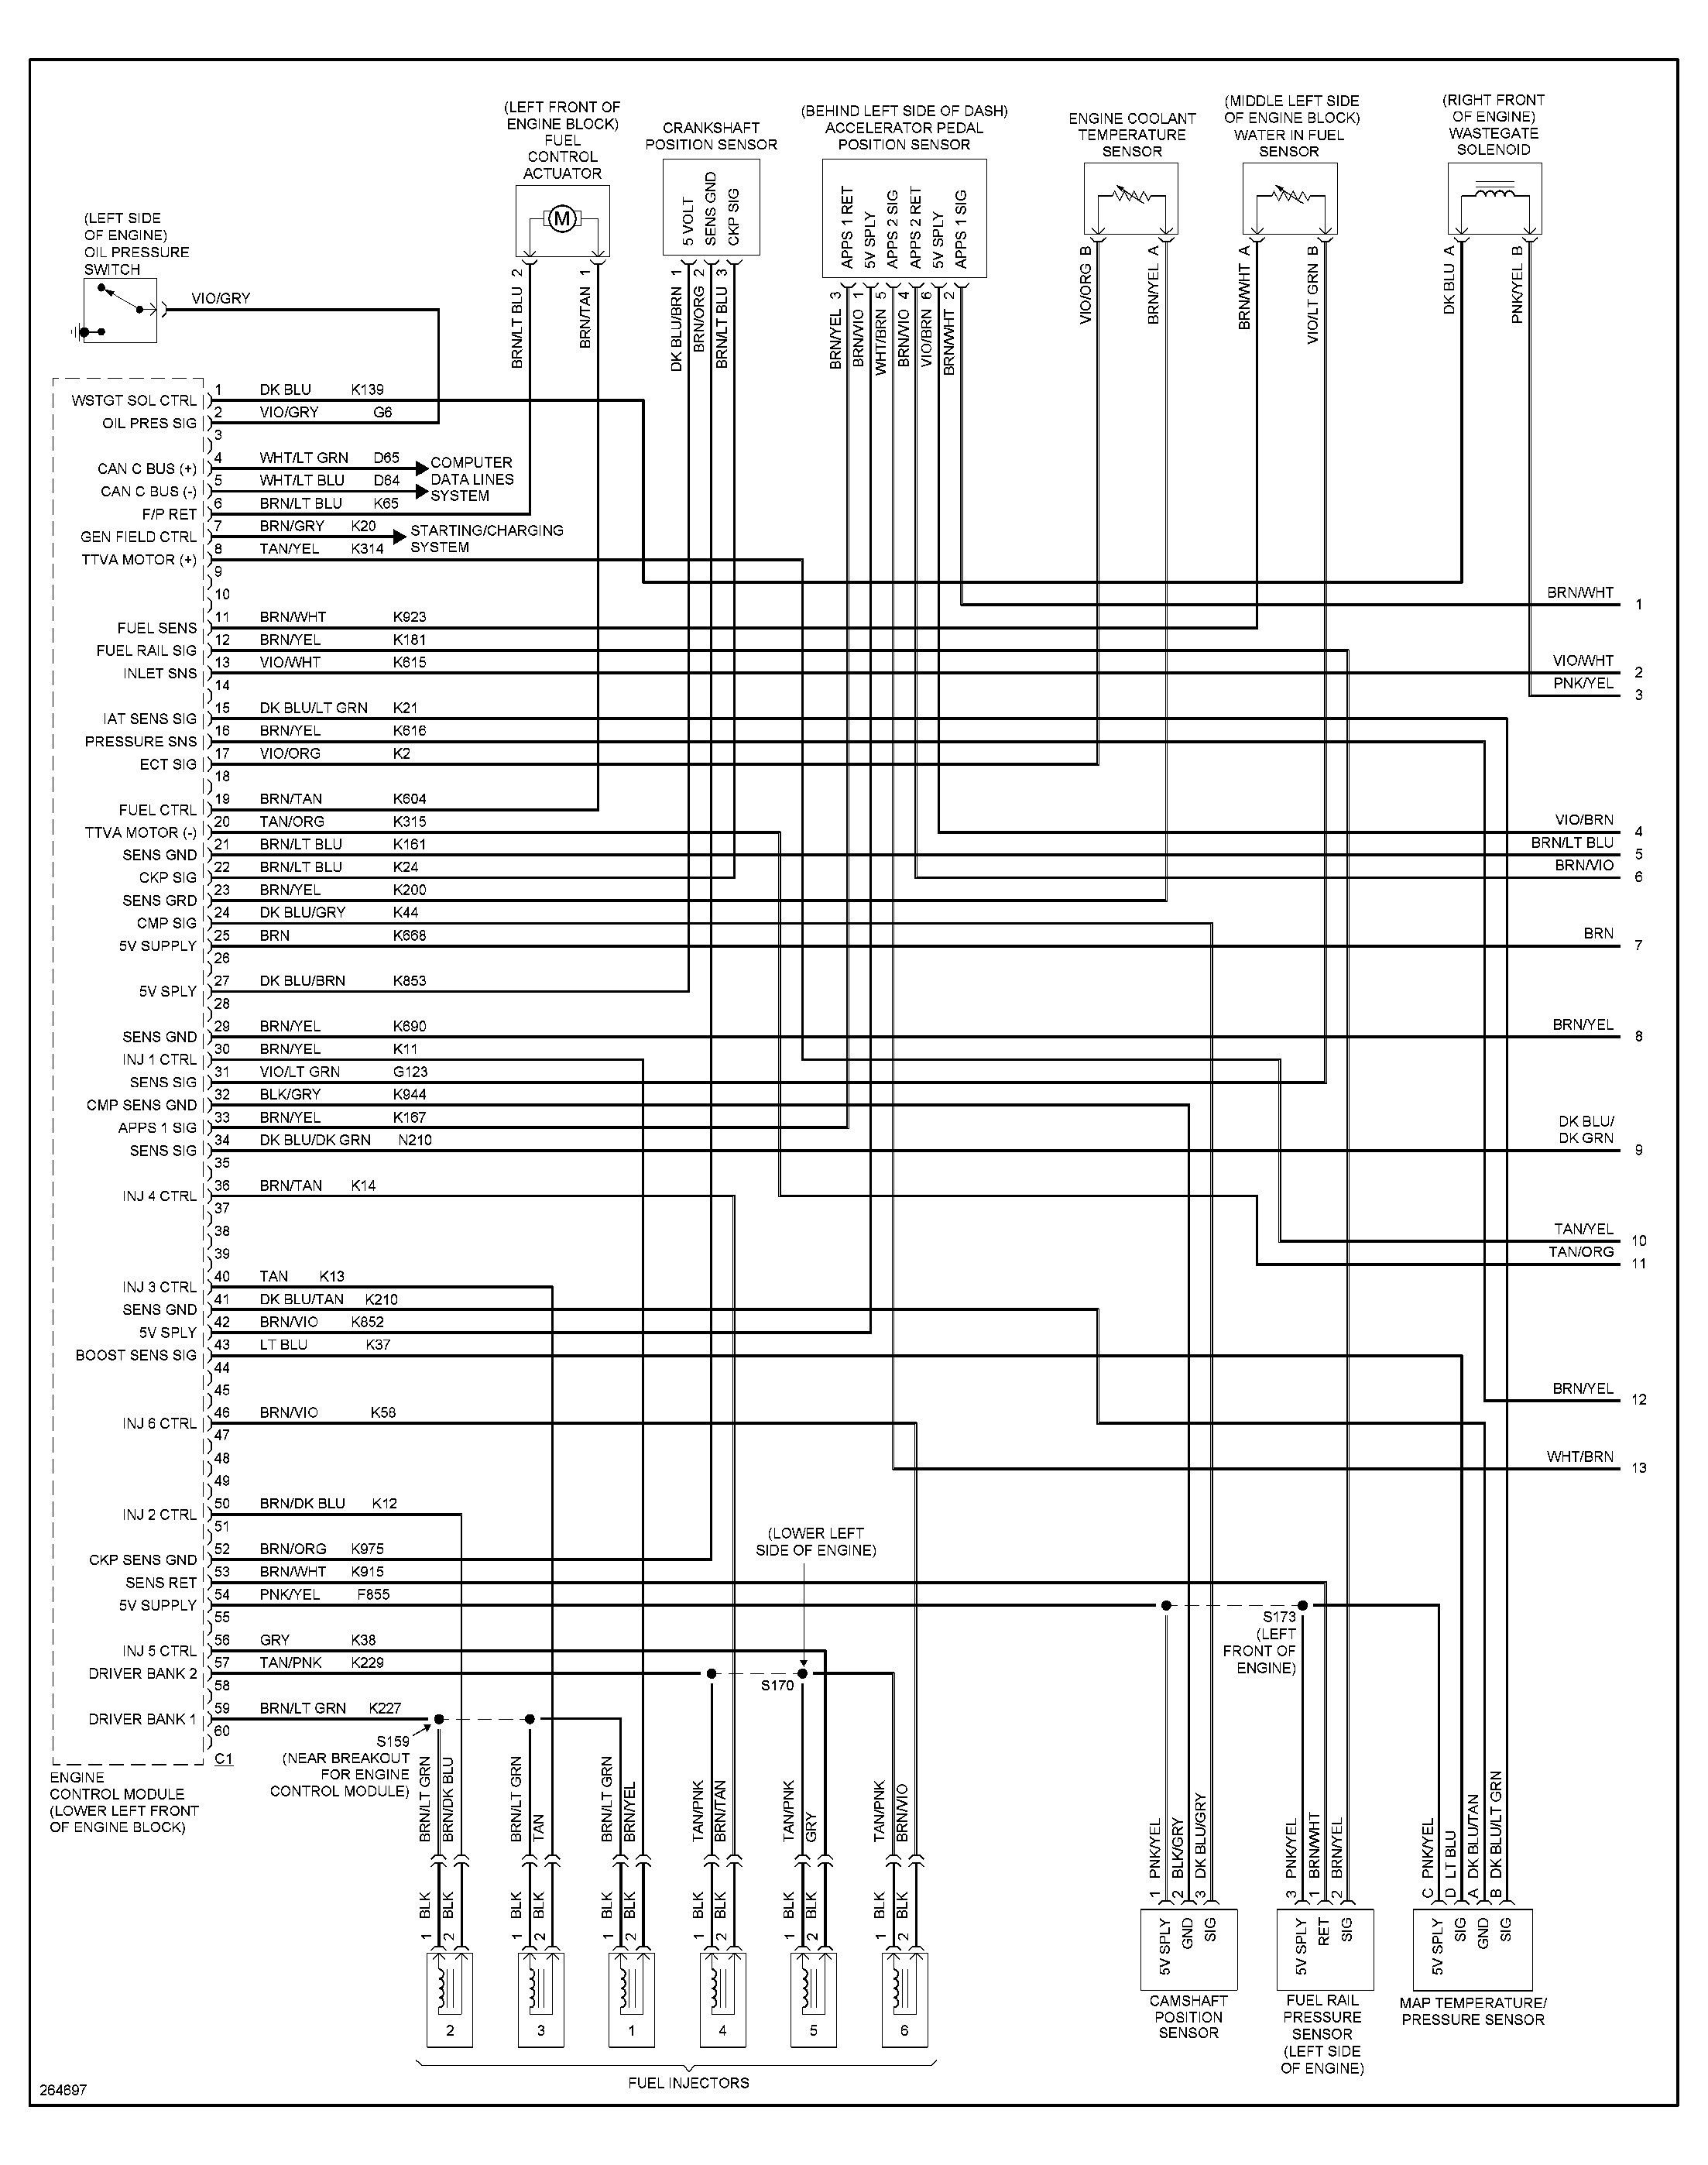 Unique 1999 Dodge Ram 1500 Trailer Wiring Diagram Diagram Diagramsample Diagramtemplate Wiringdiagram Diagramchart Wo 2004 Dodge Ram 1500 Dodge Dodge Ram